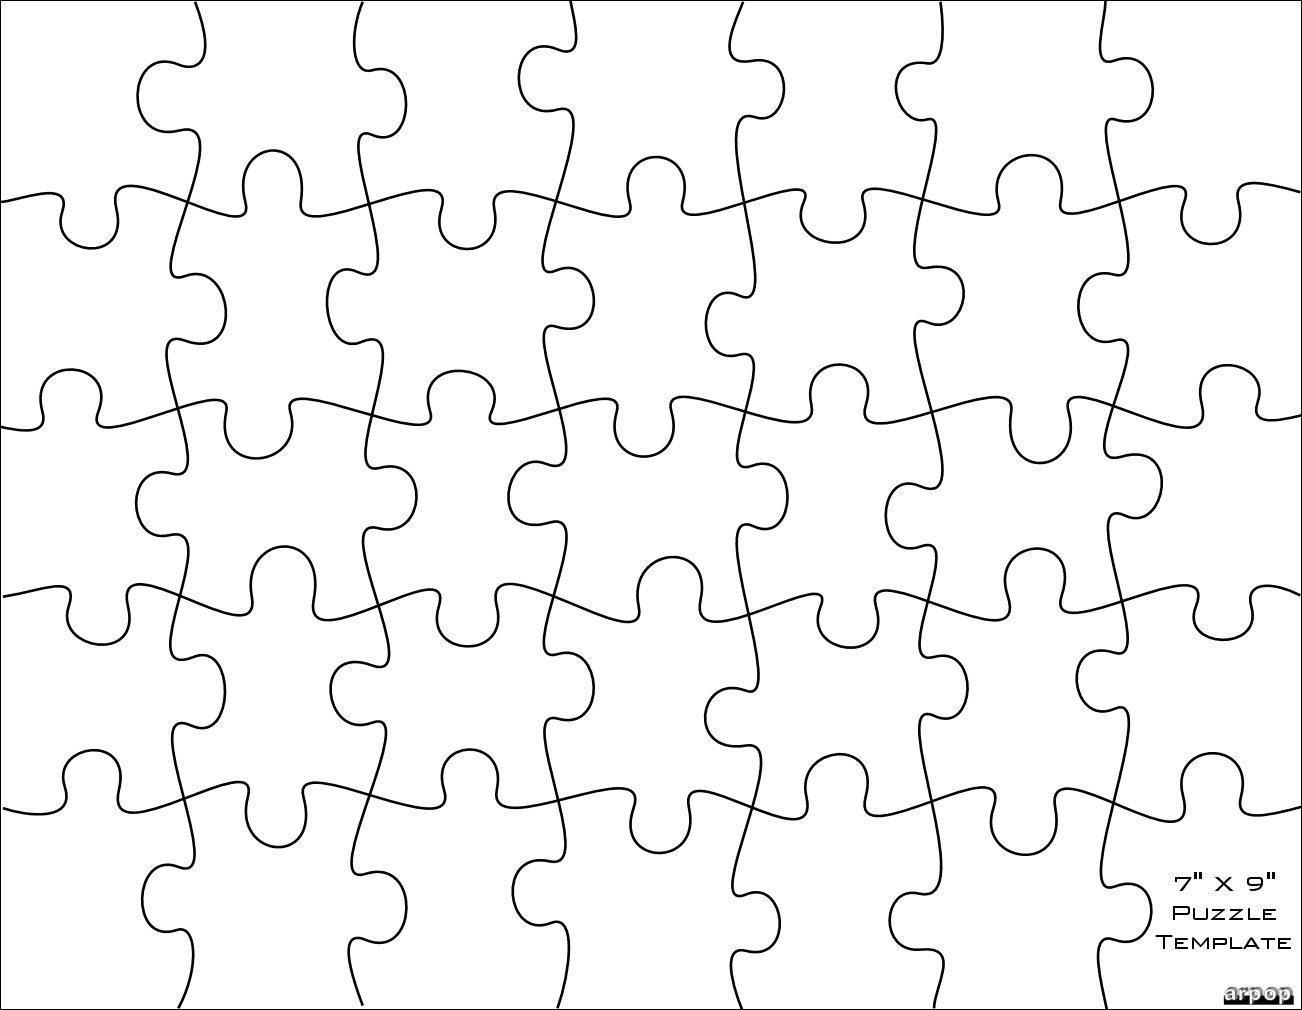 Free Puzzle Template, Download Free Clip Art, Free Clip Art On - Jigsaw Puzzle Maker Free Printable